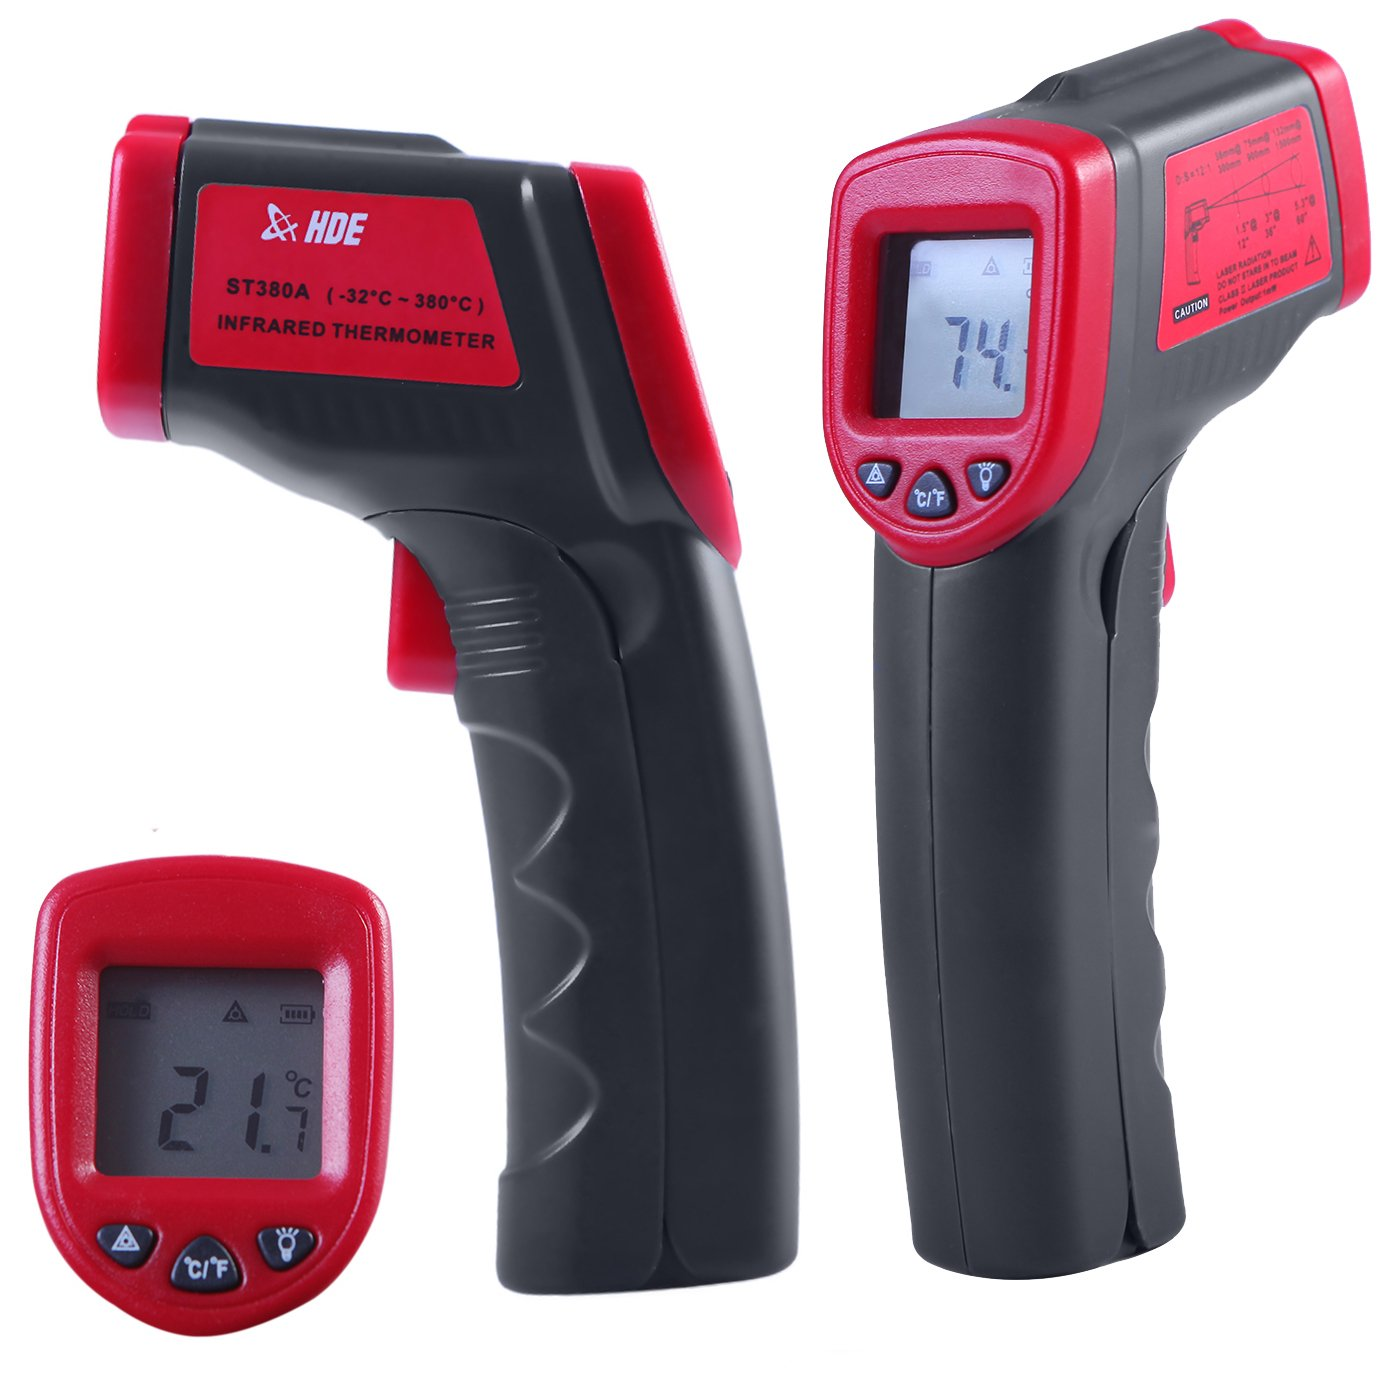 HDE Non-Contact Infrared Thermometer Digital Temperature Gun with Laser Functional Range -26 to 716 Degree Fahrenheit (-32 to 380 Degrees Celsius)